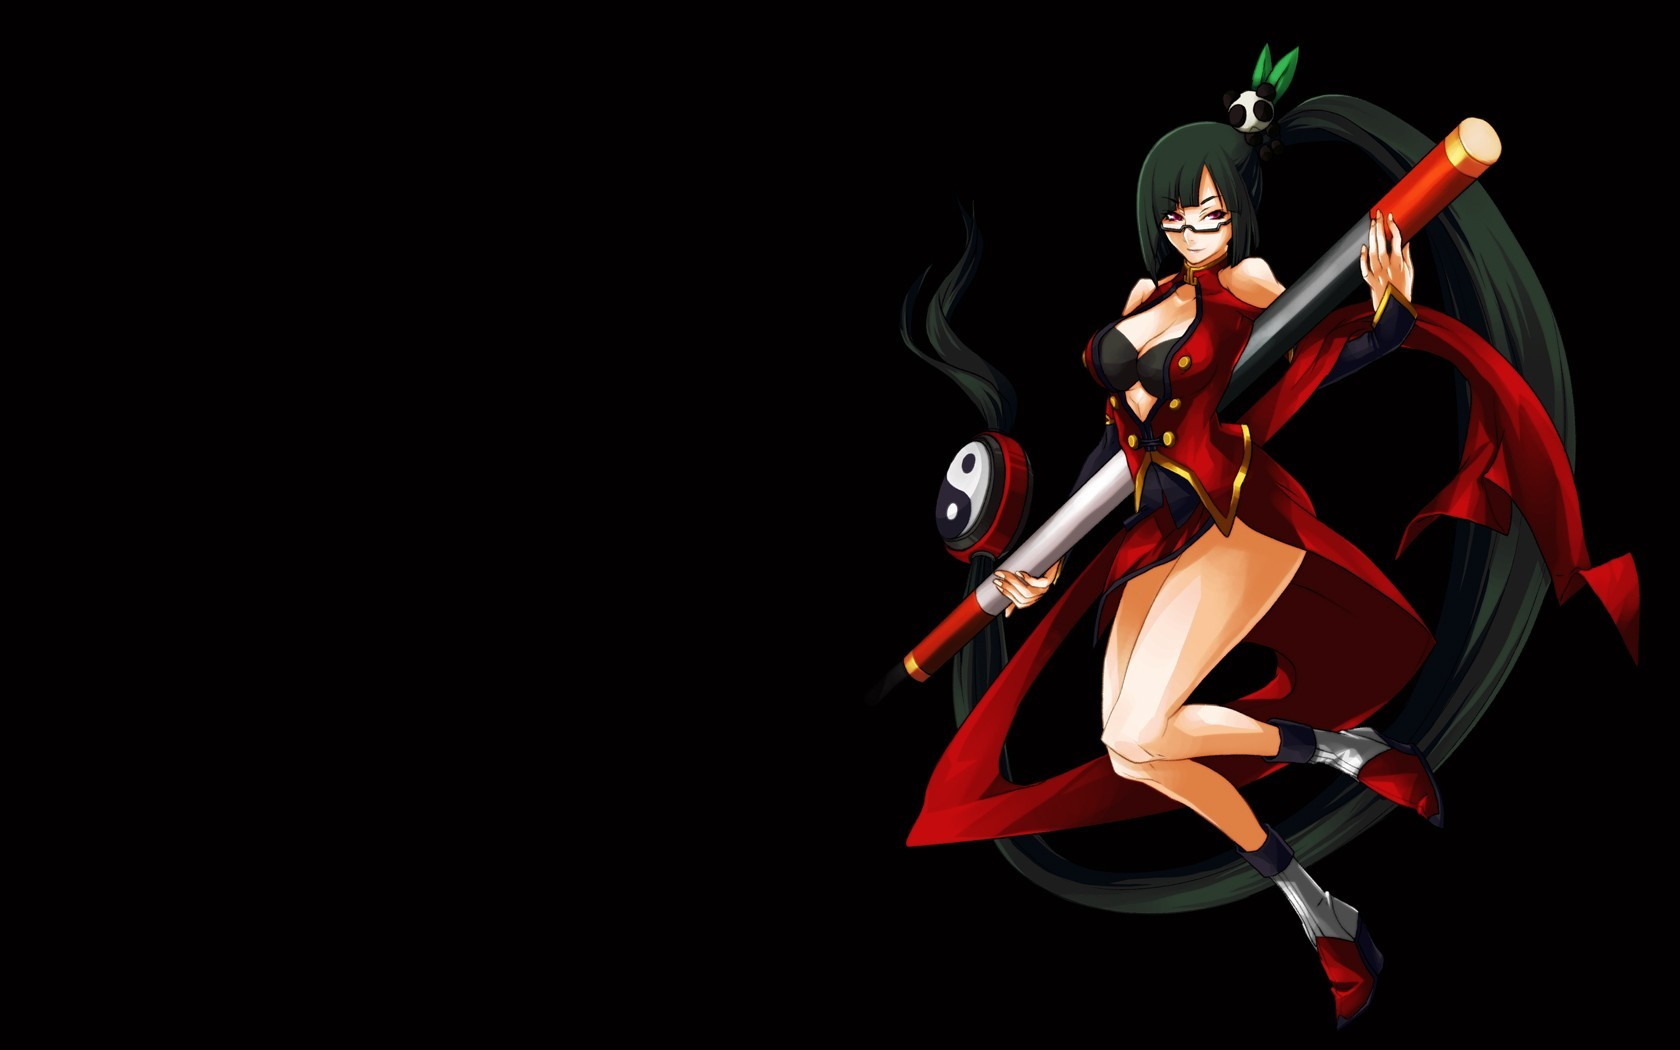 glasses red eyes blazblue HD Wallpaper